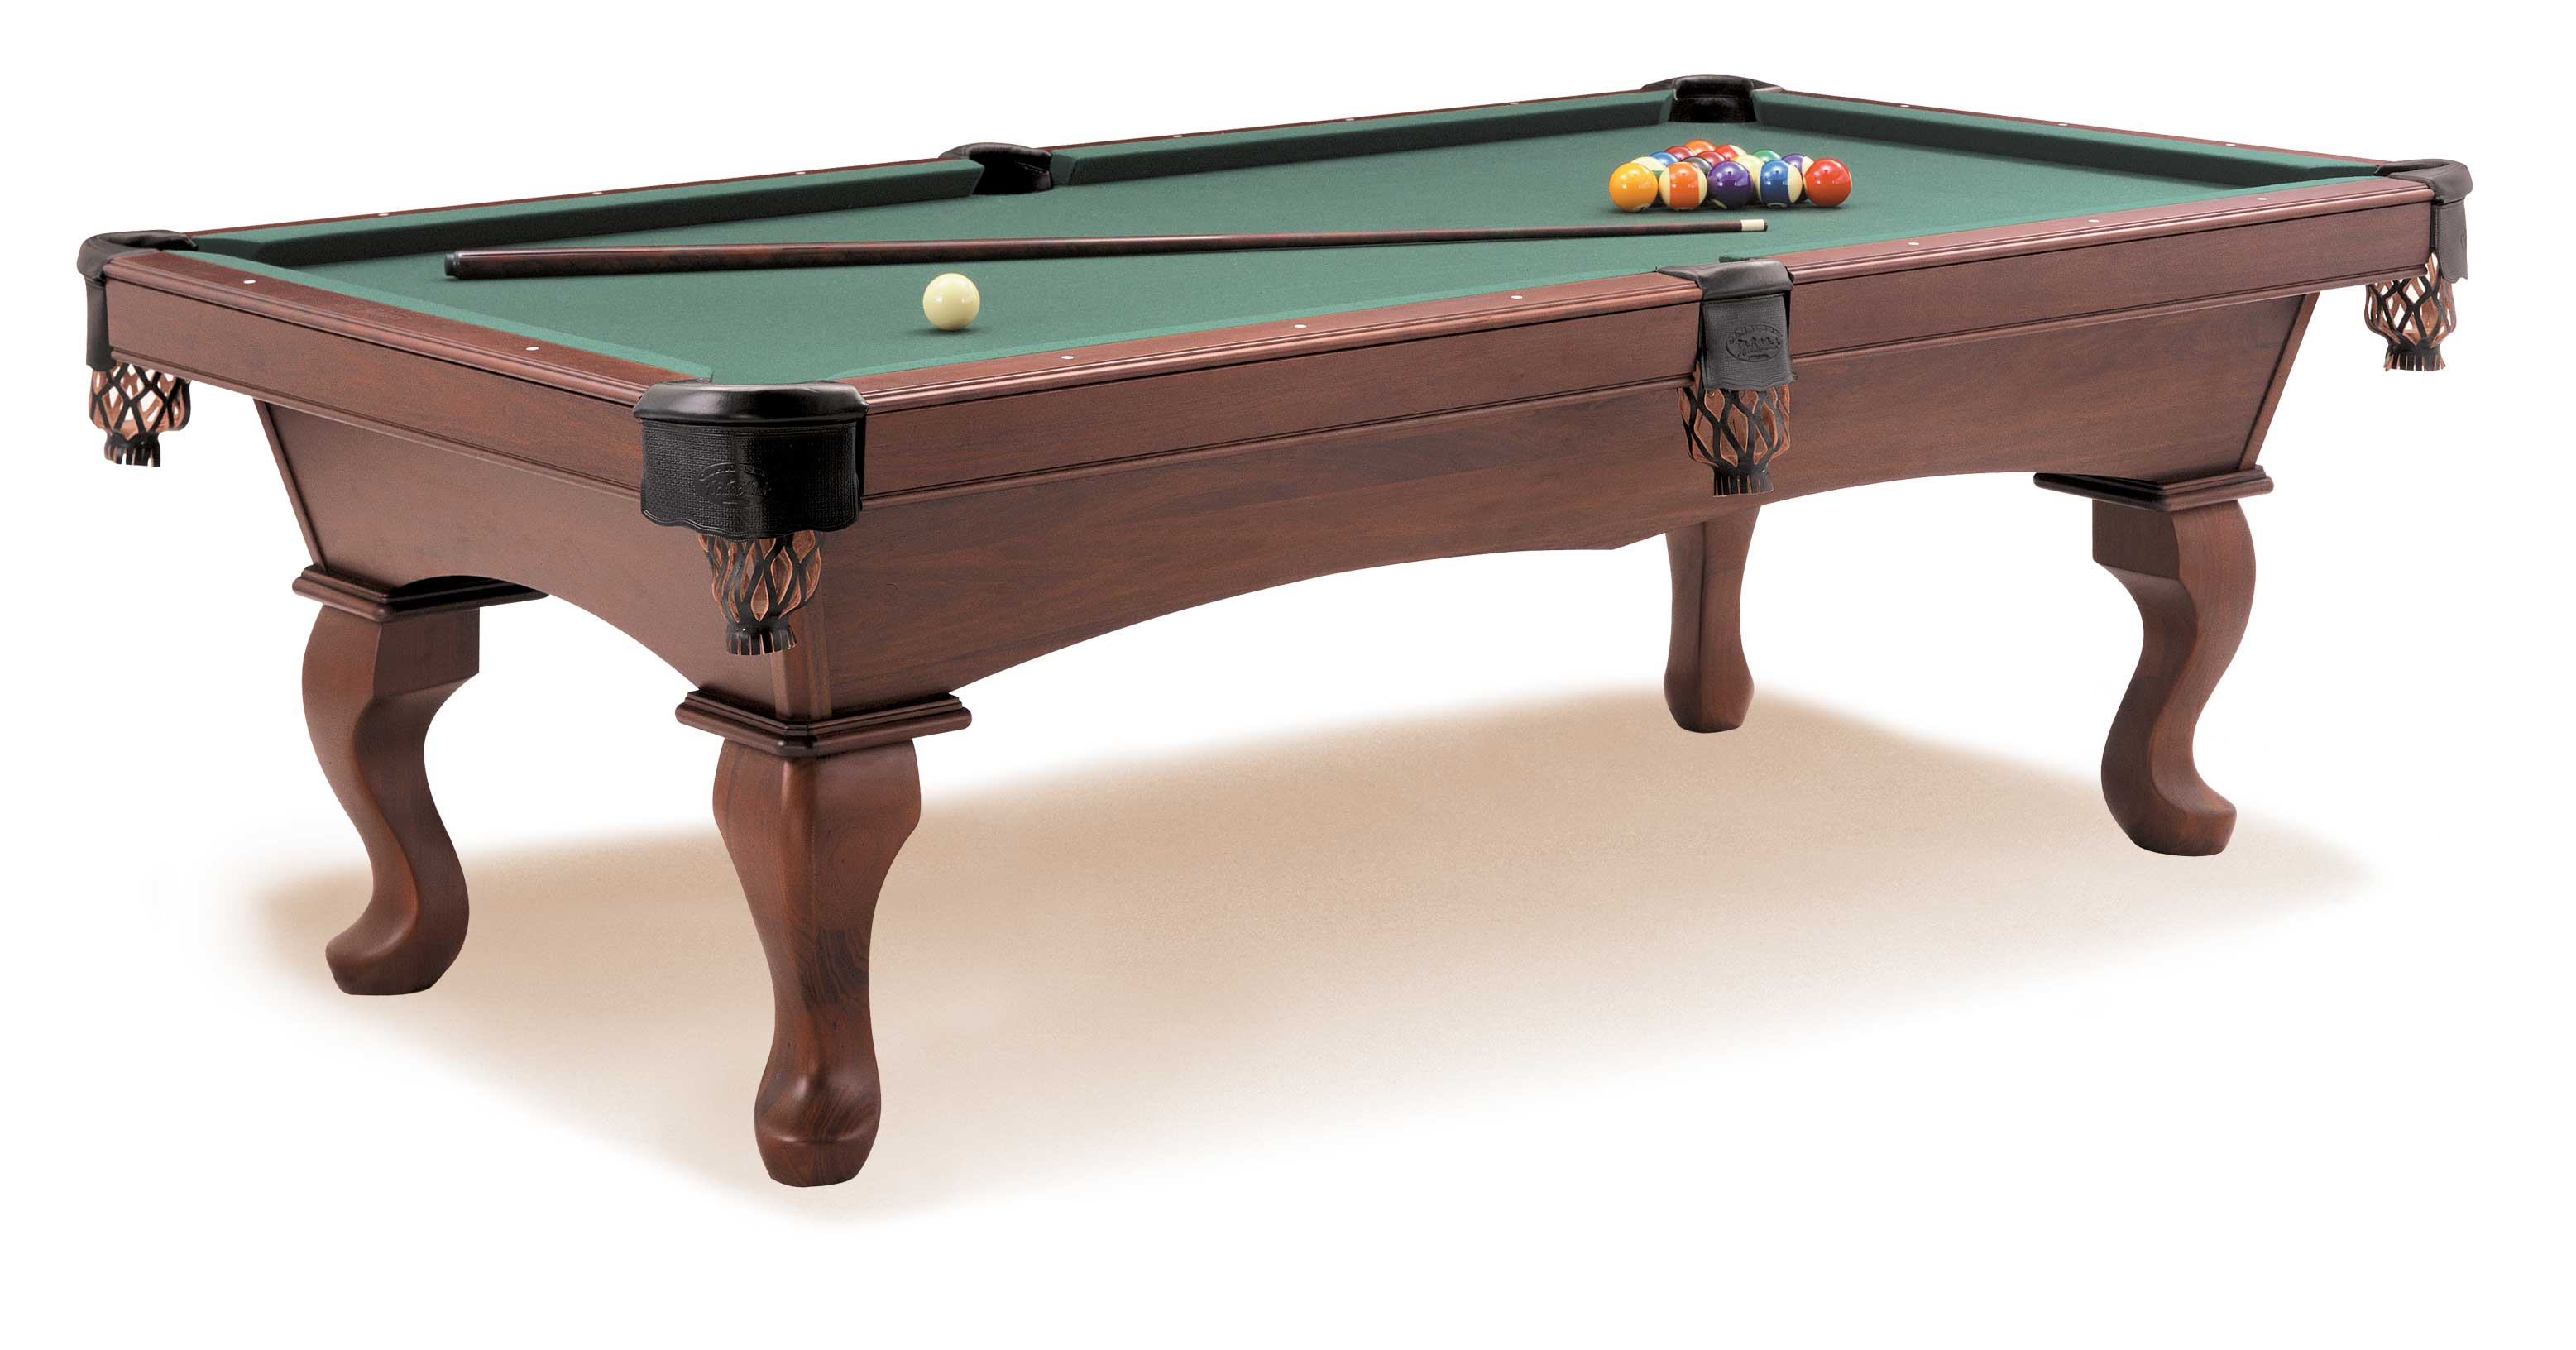 Used Olhausen Pool Tables For Sale Olhausen Pool Tables For Sale New Jersey Billiards Pool Table NJ